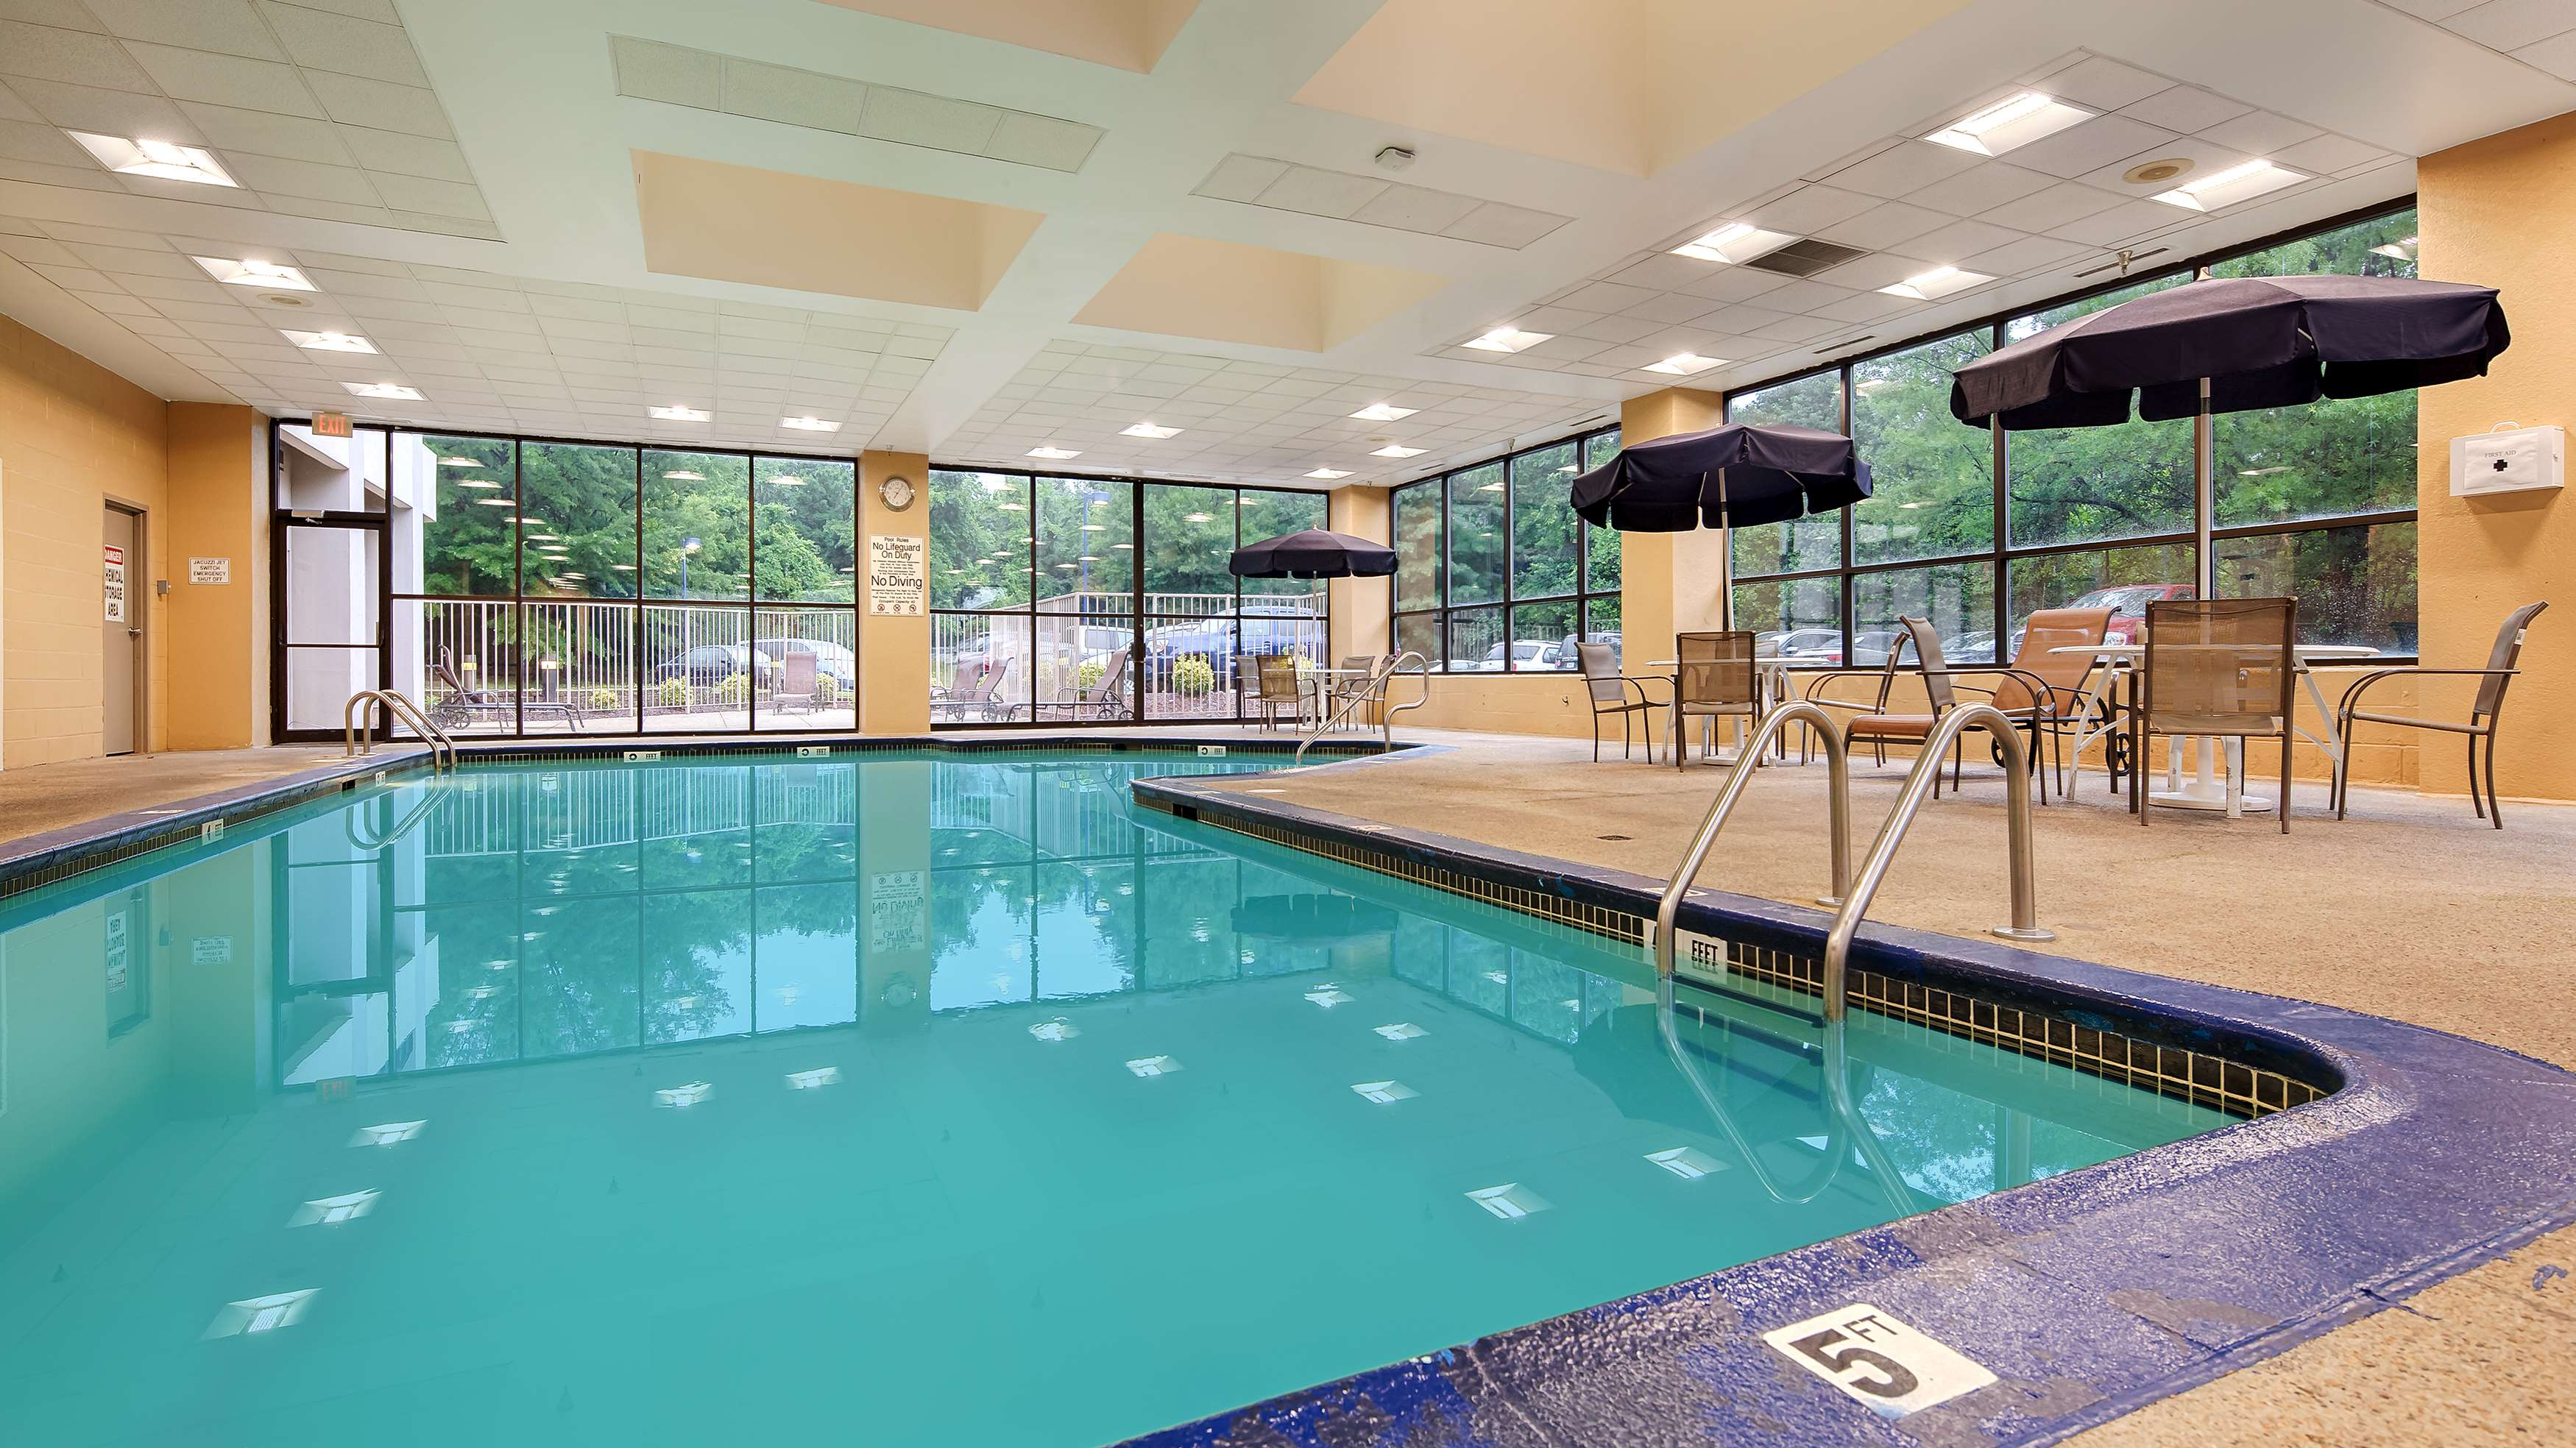 Best western plus bwi airport hotel arundel mills - Arundel hotels with swimming pool ...